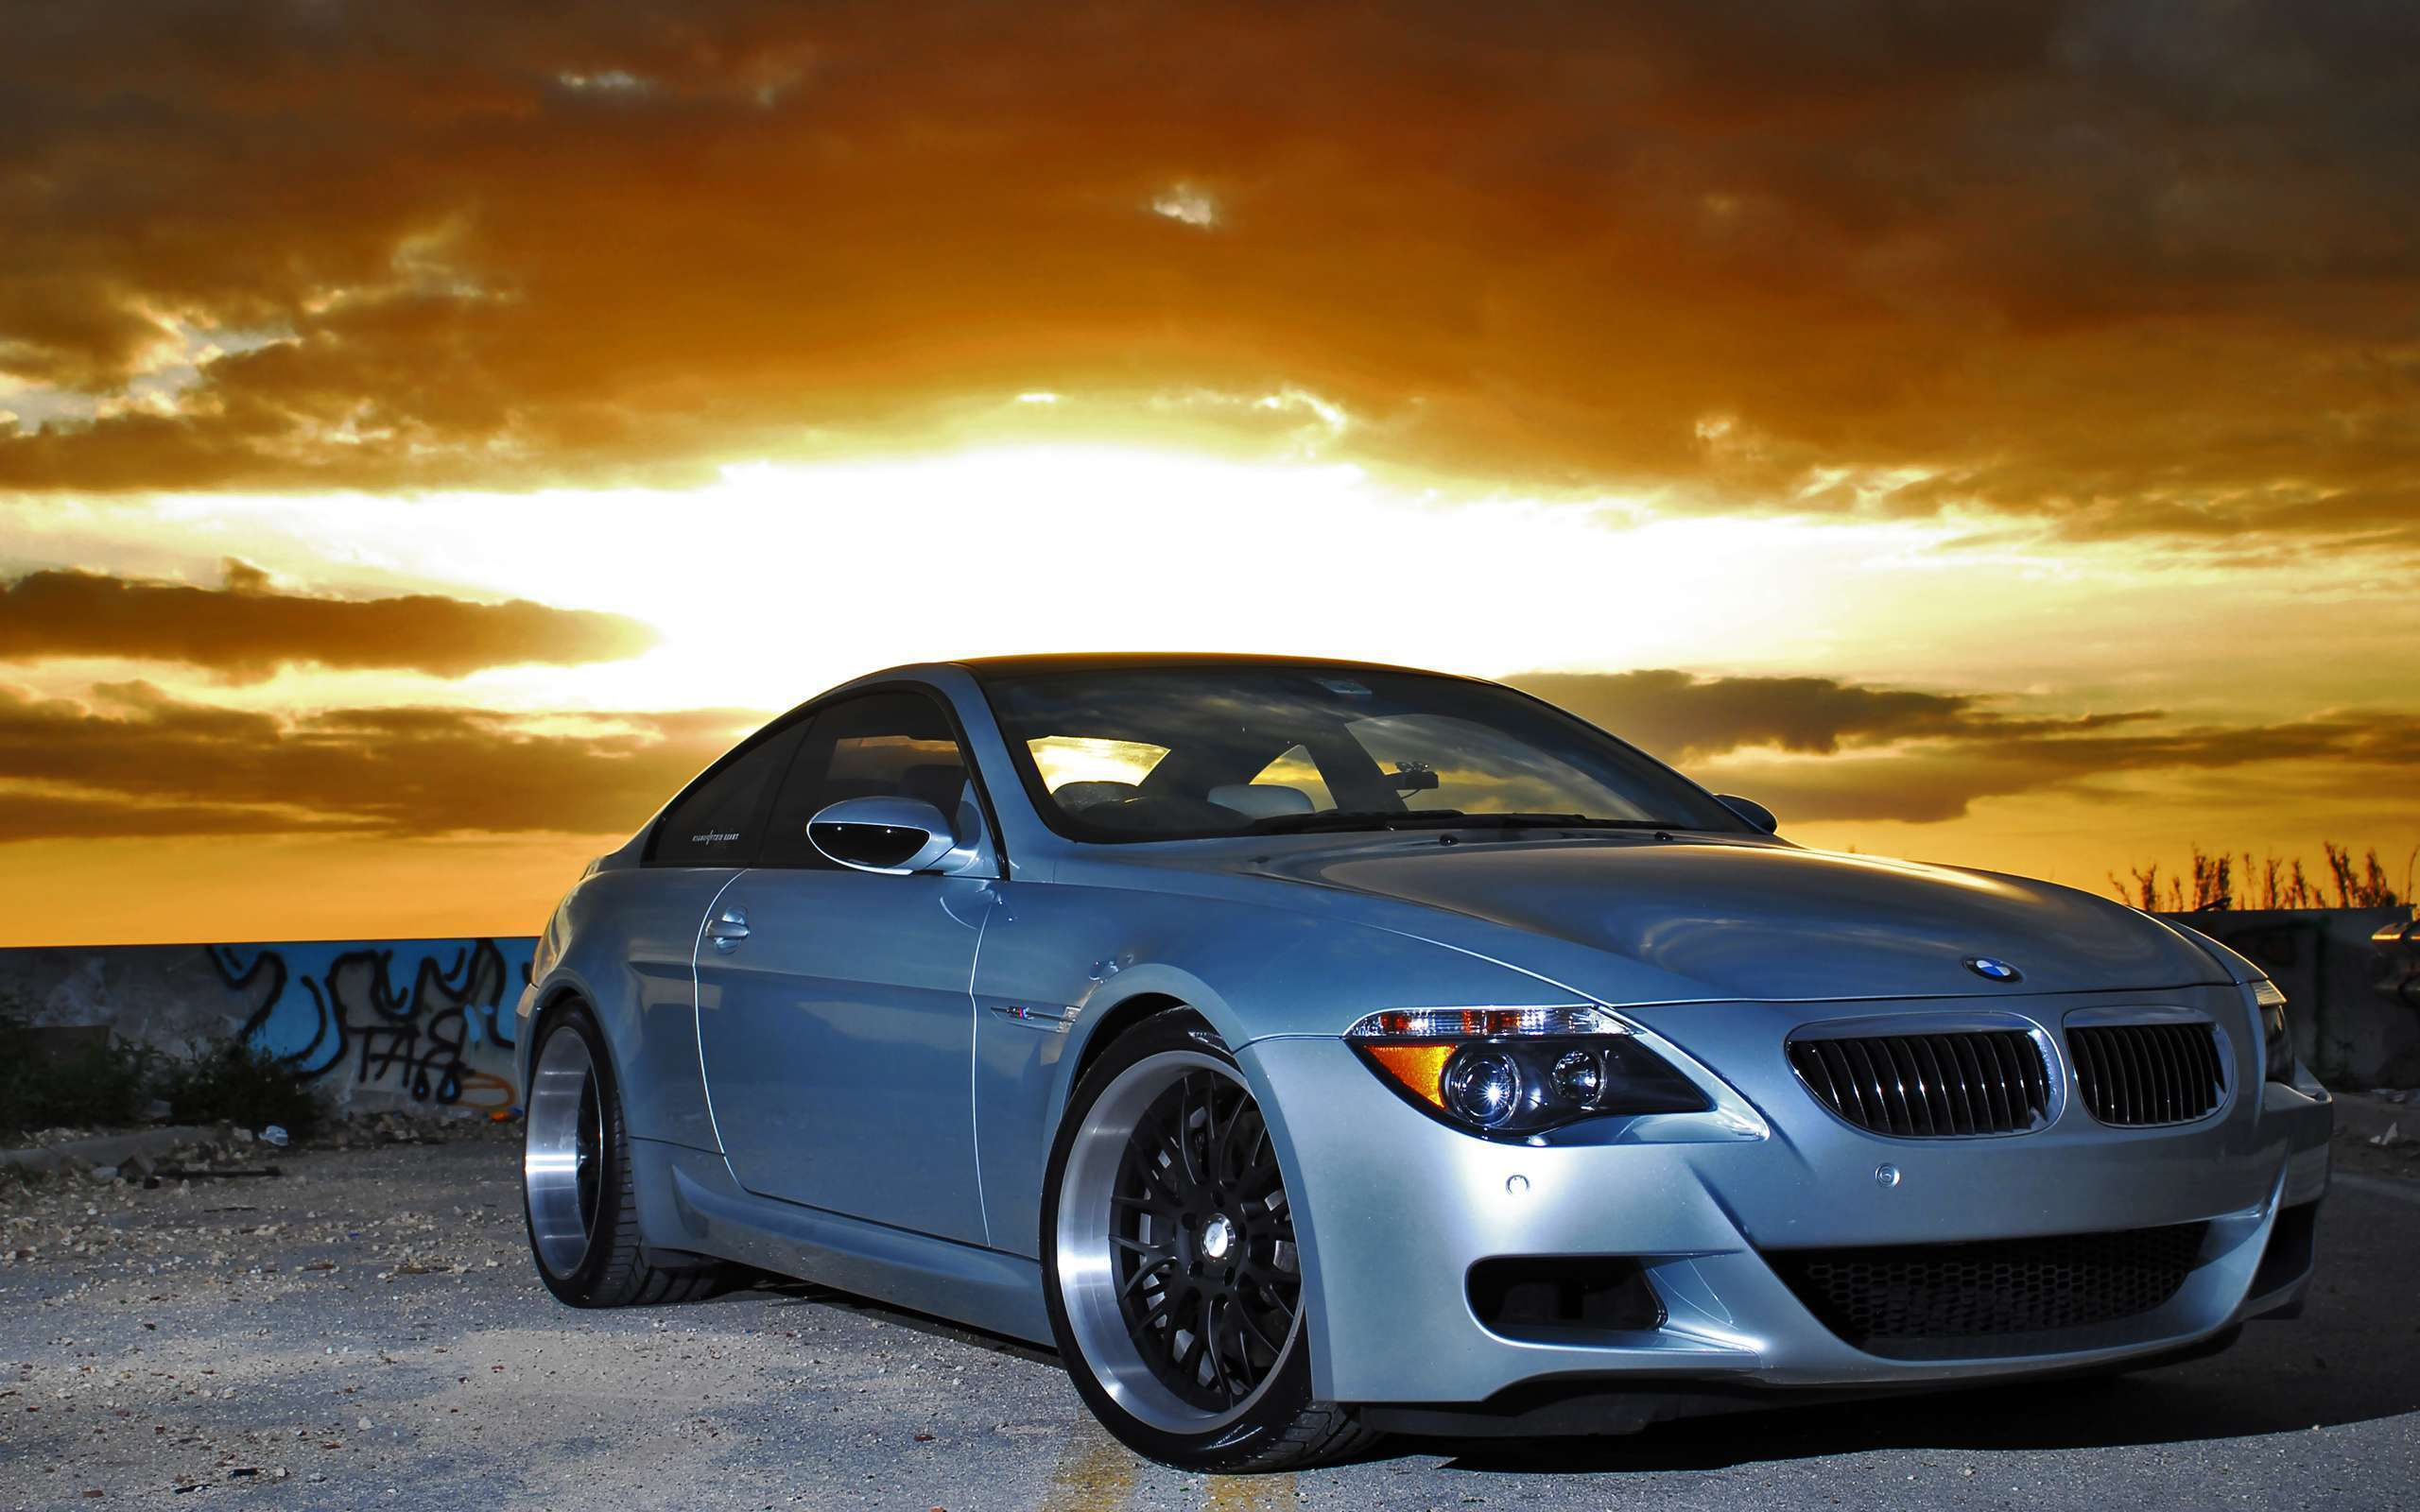 Bmw M6 Forged Wheels Hd Wallpapers Hd Car Wallpapers